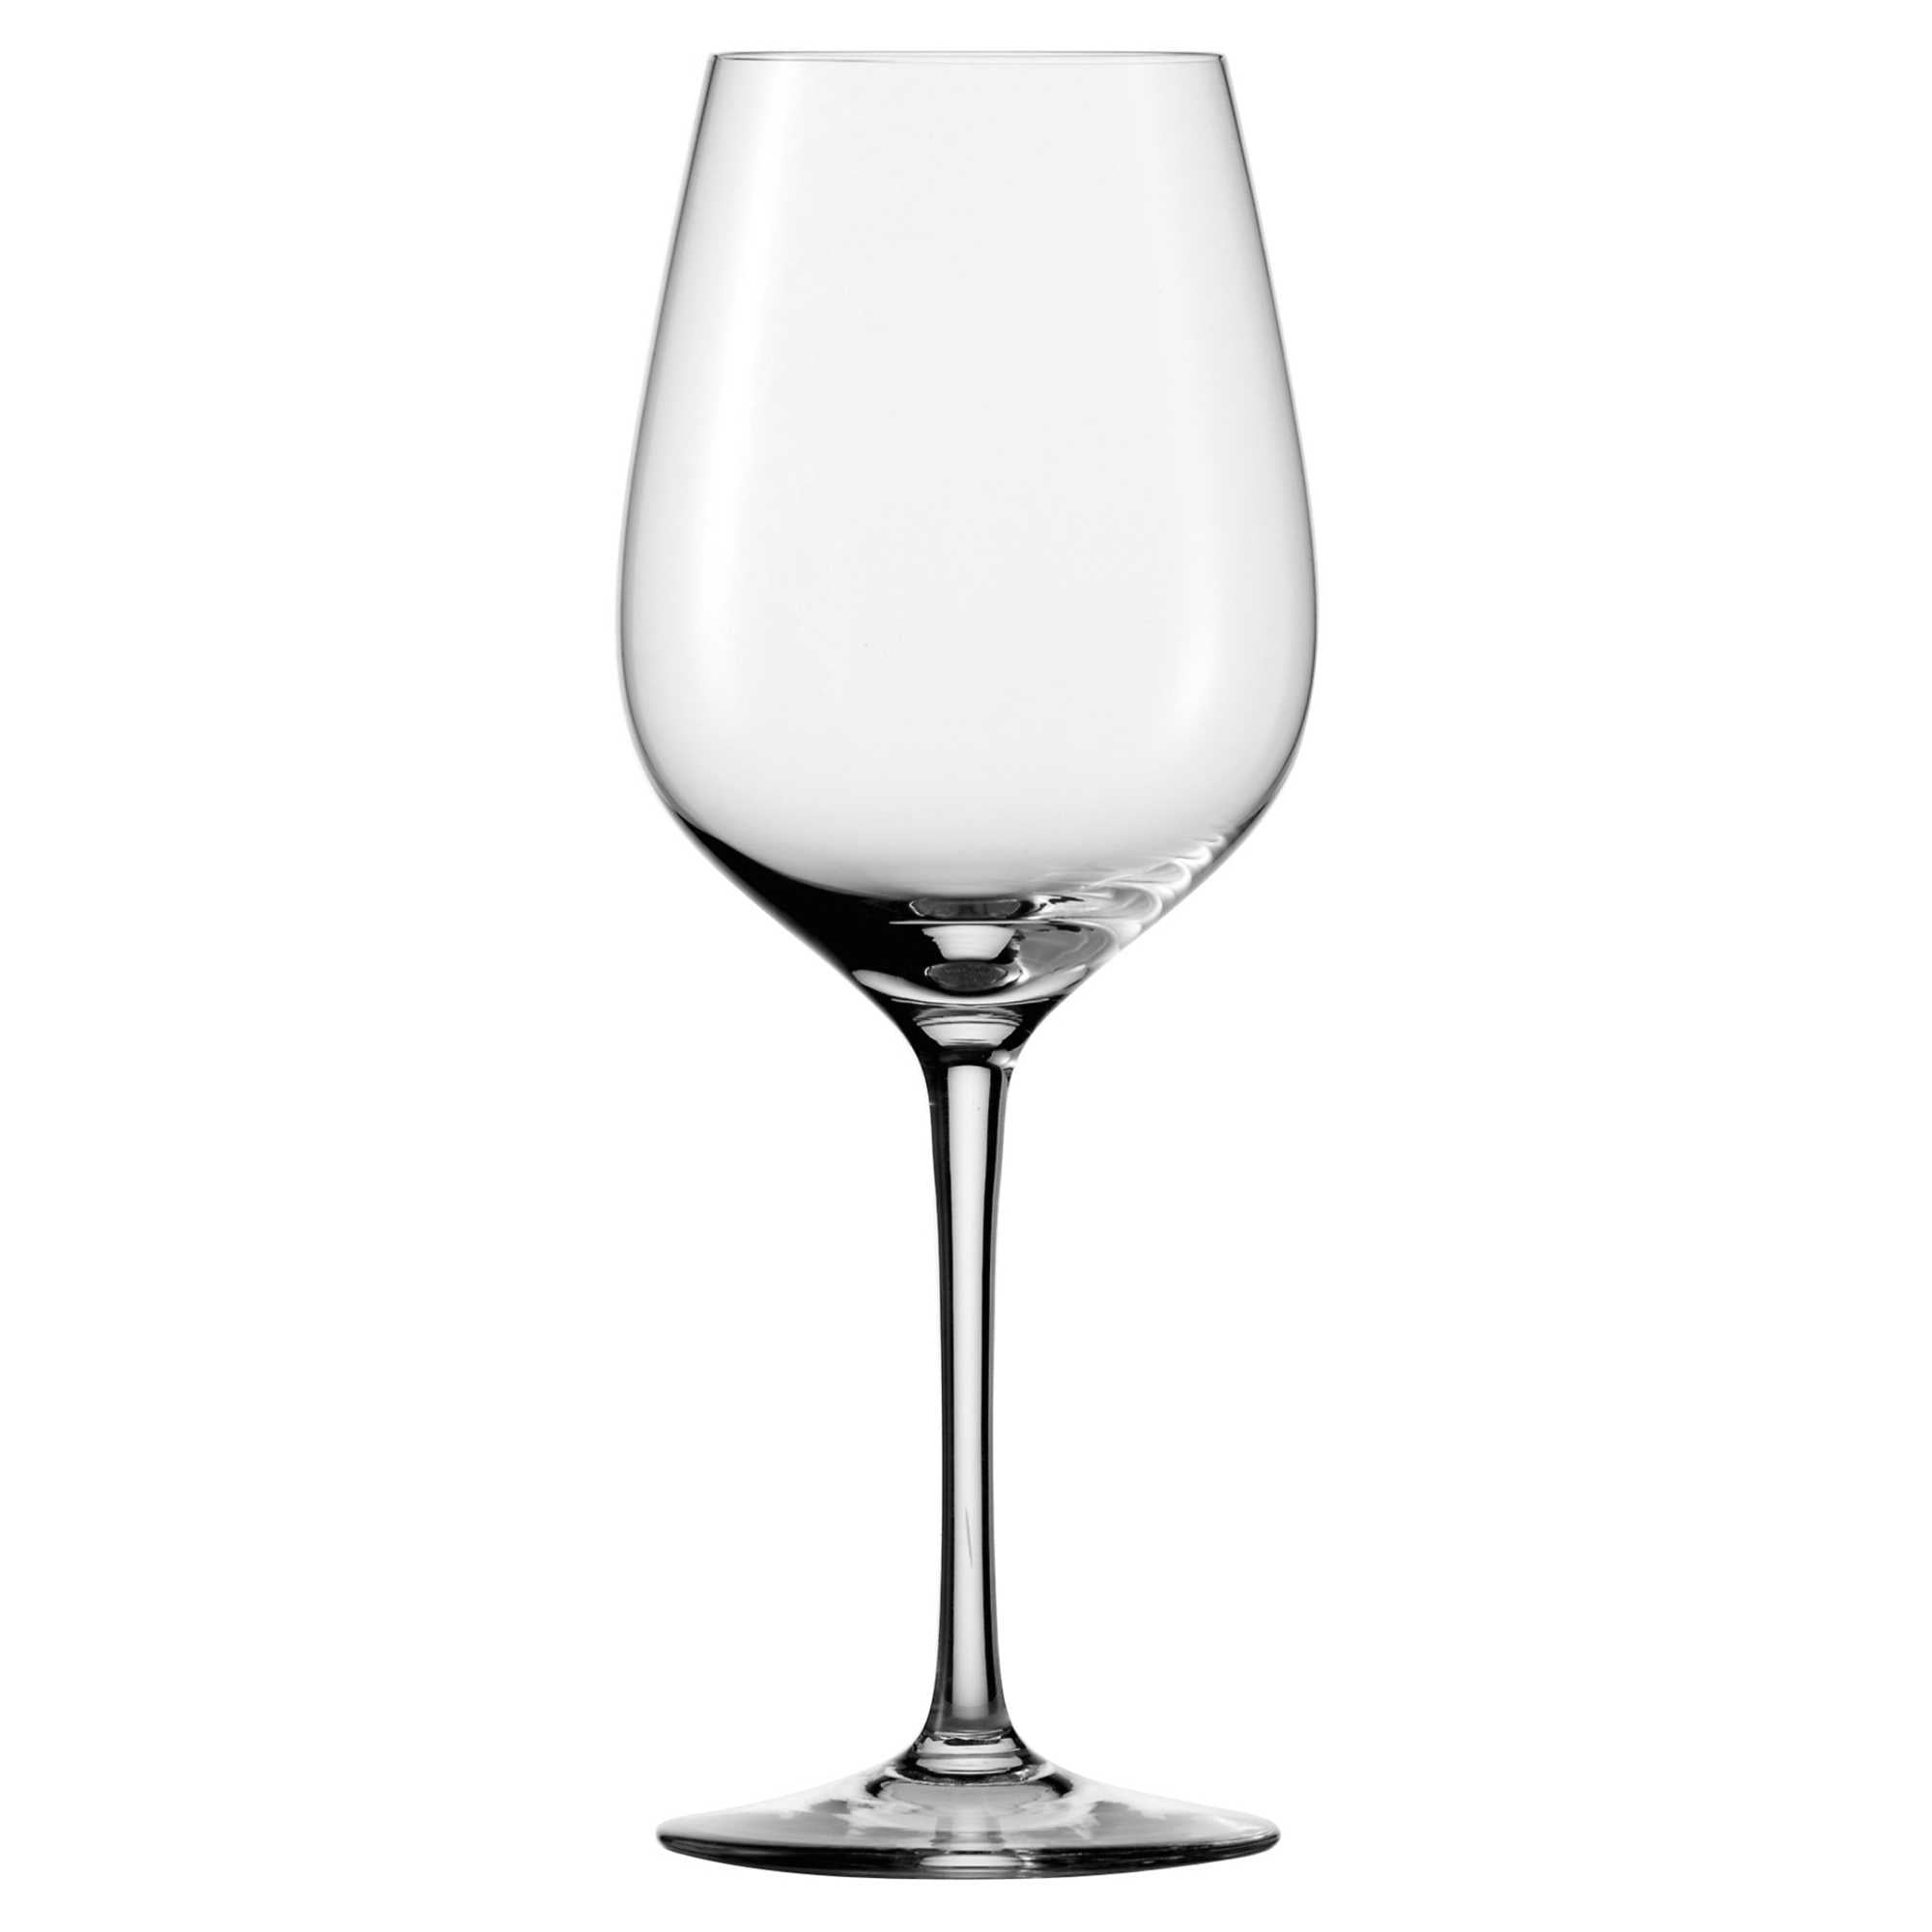 Eisch Superior Bordeaux Glass